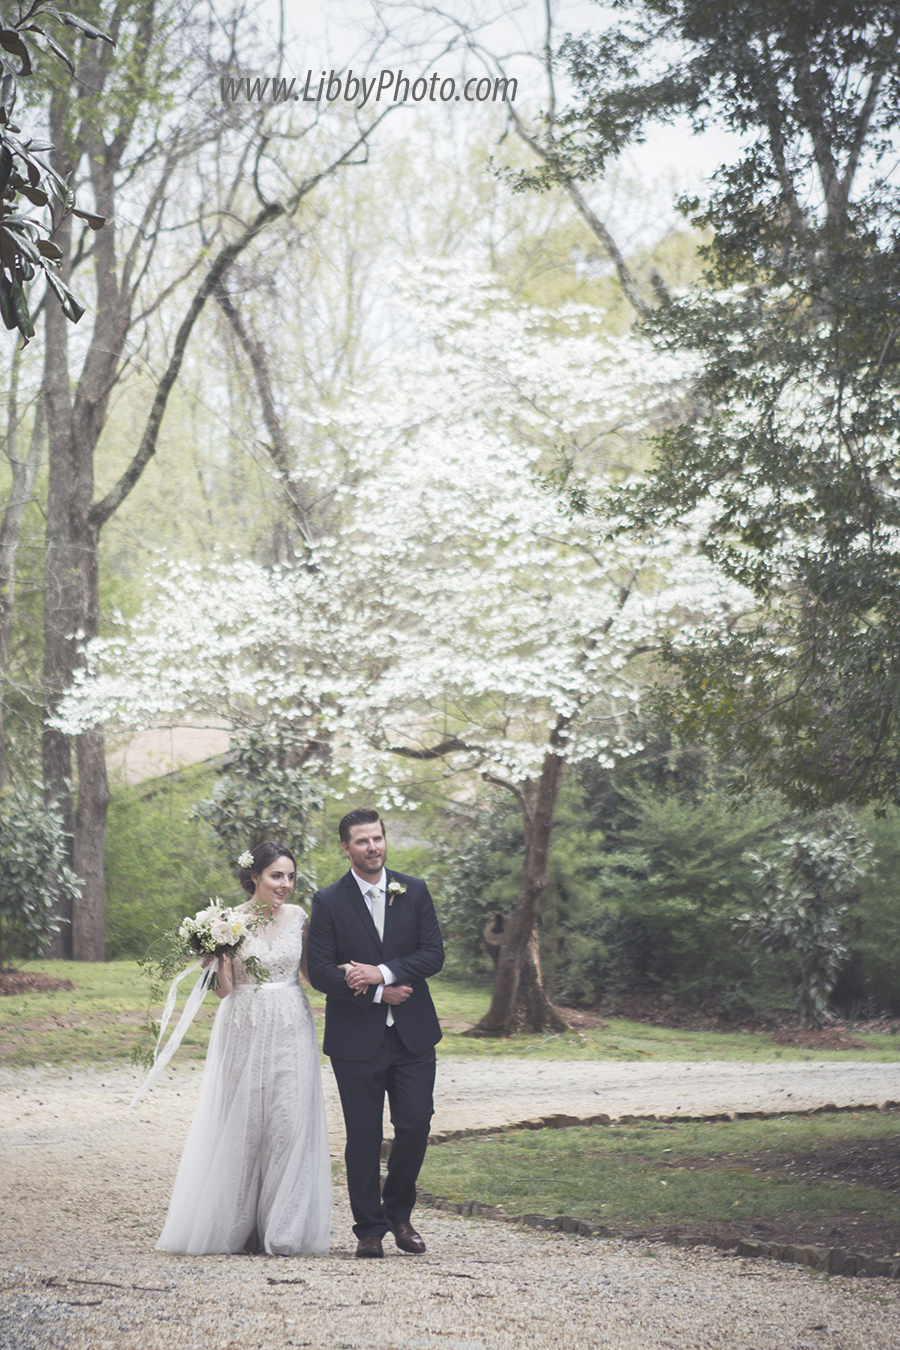 Atlanta wedding photography Libbyphoto (13).jpg